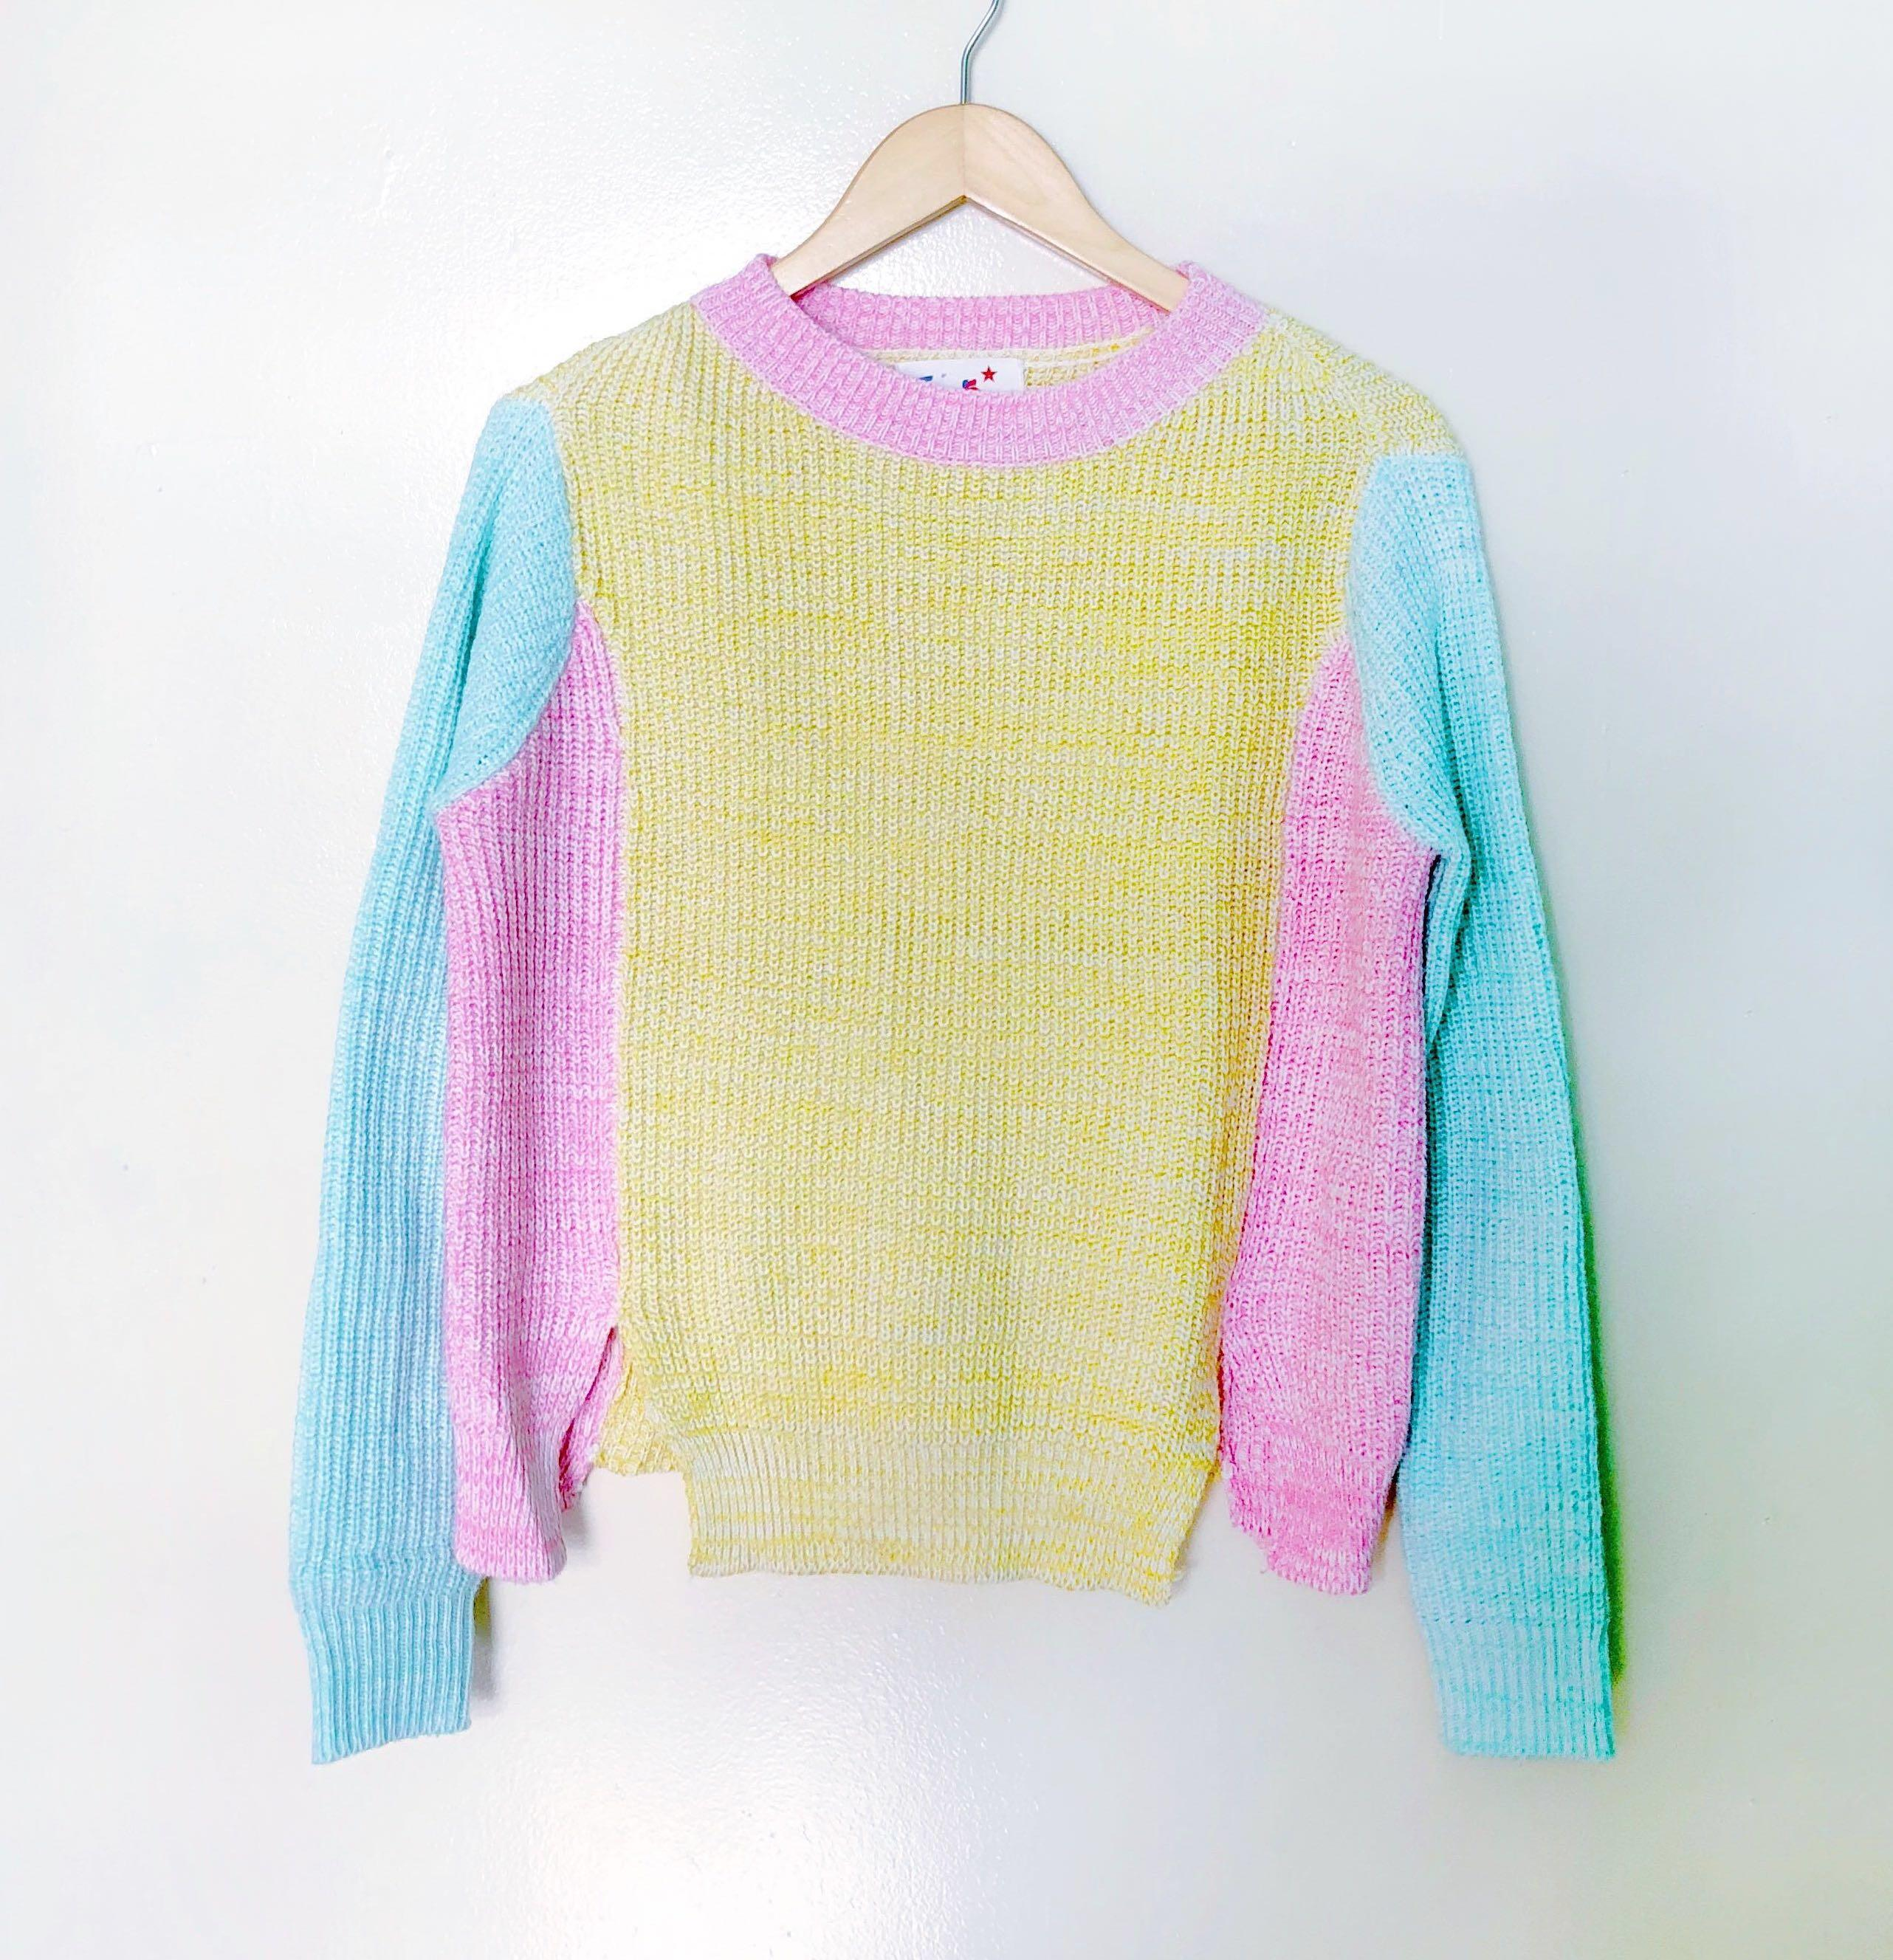 Pastel Colour Block Sweater Women S Fashion Clothes Outerwear On Carousell